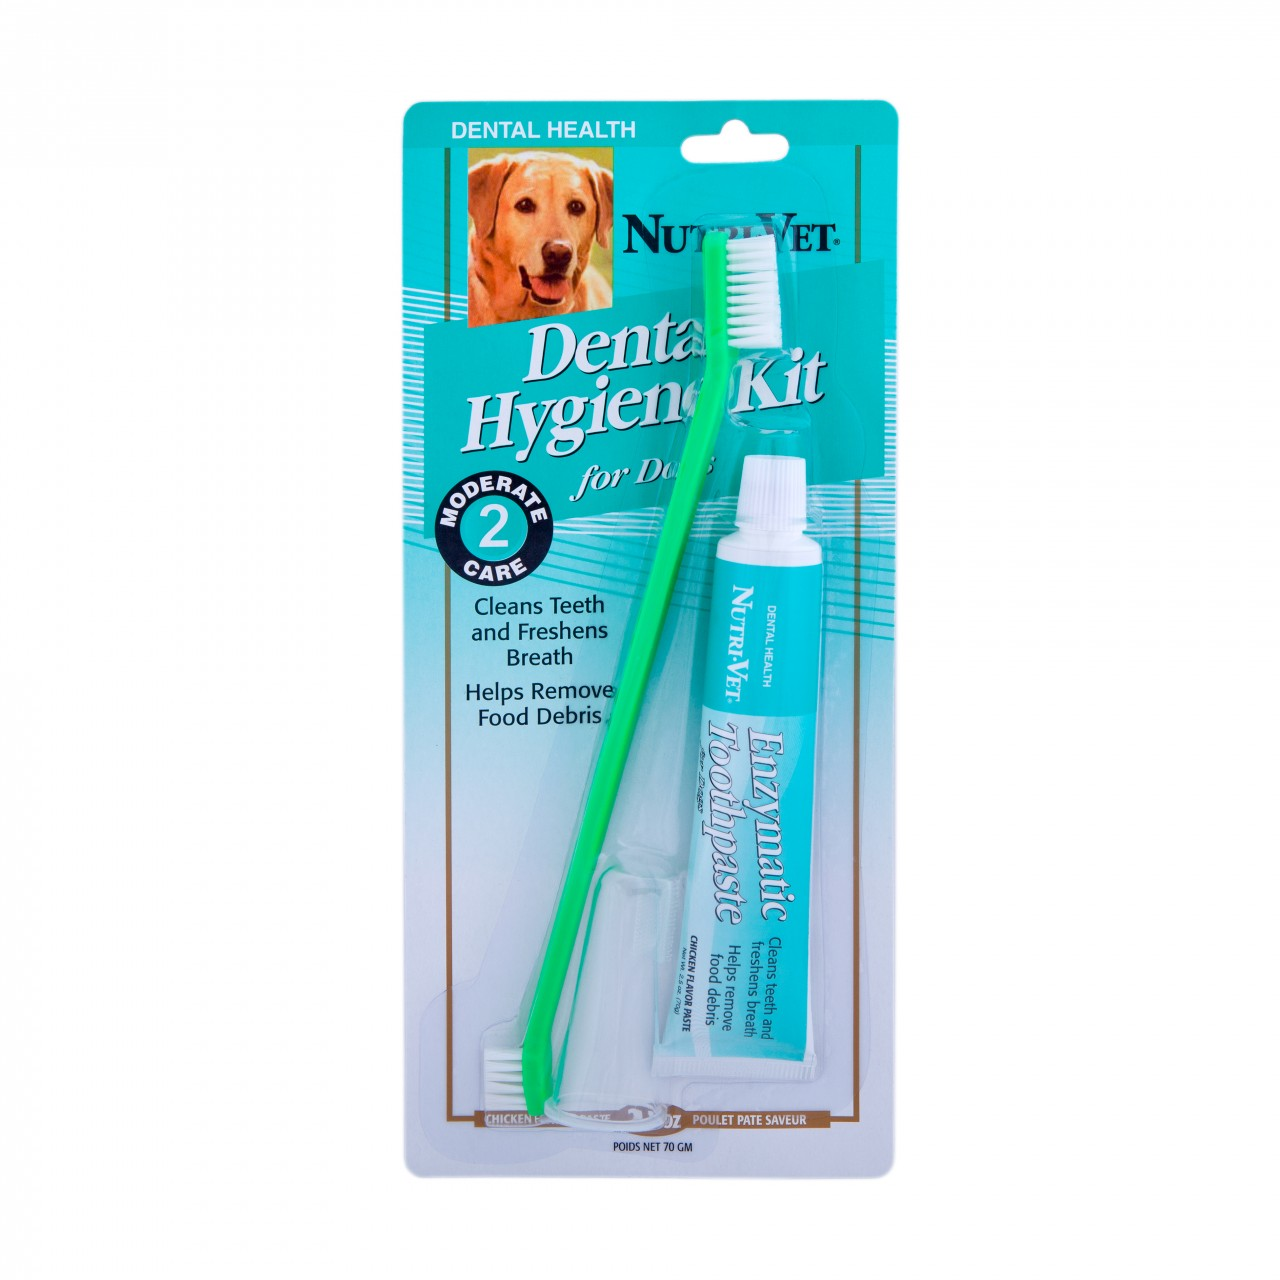 Nutri-Vet Dental Hygiene Kit